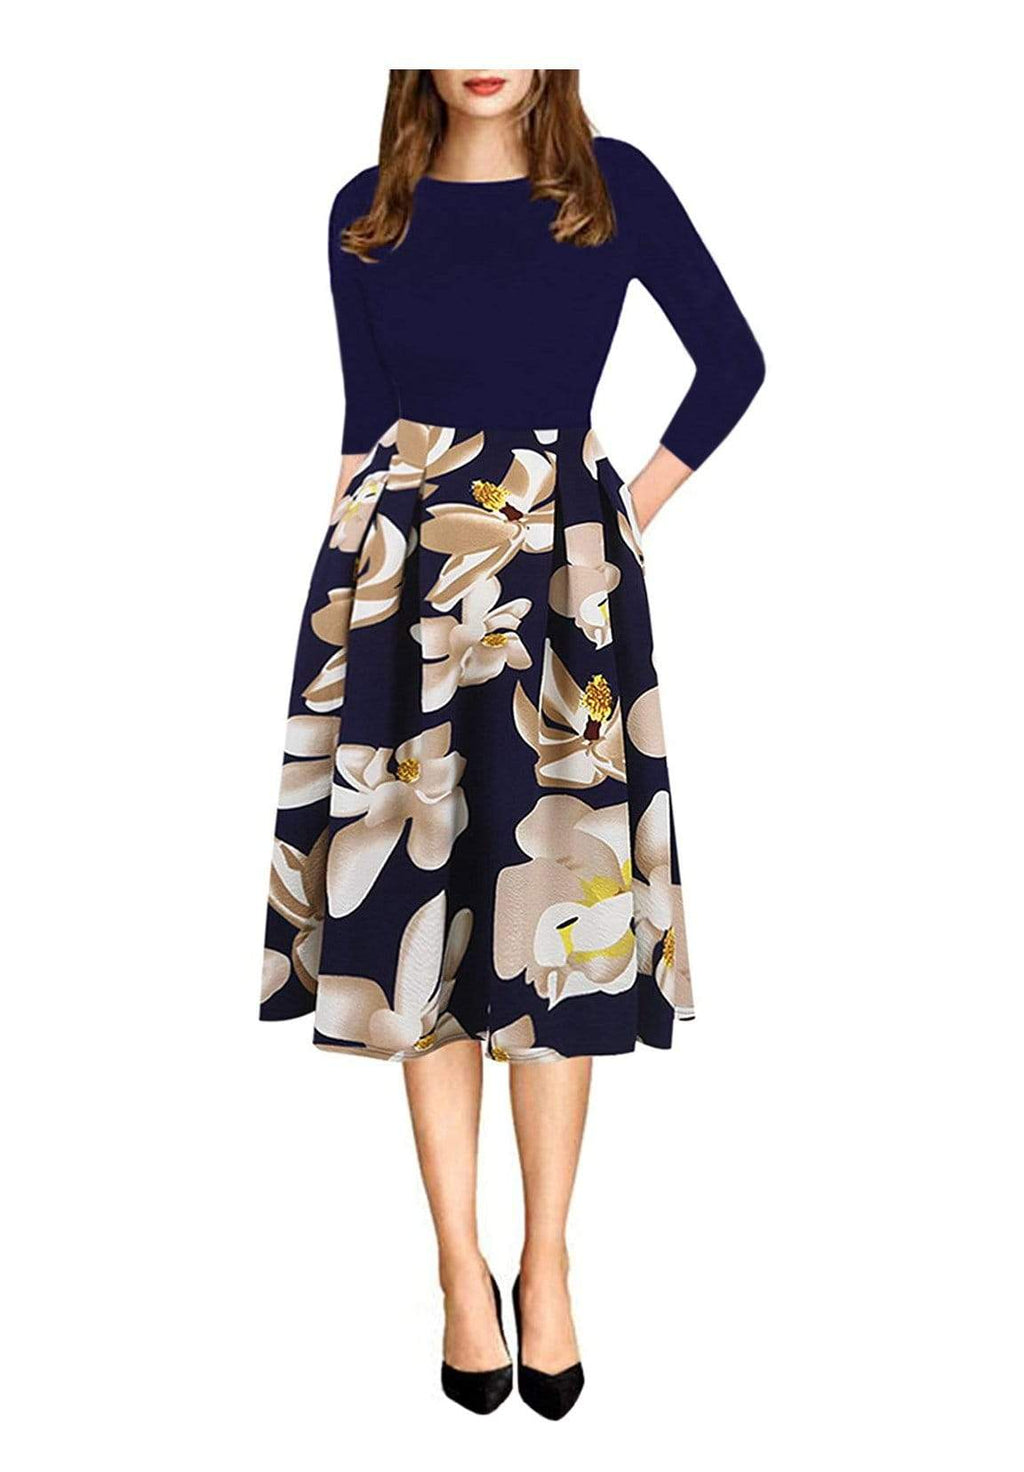 DAILYHAUTE Women's dress NAVY / S Haute Edition Women's Retro 3/4 Sleeve Party Dress with Pockets